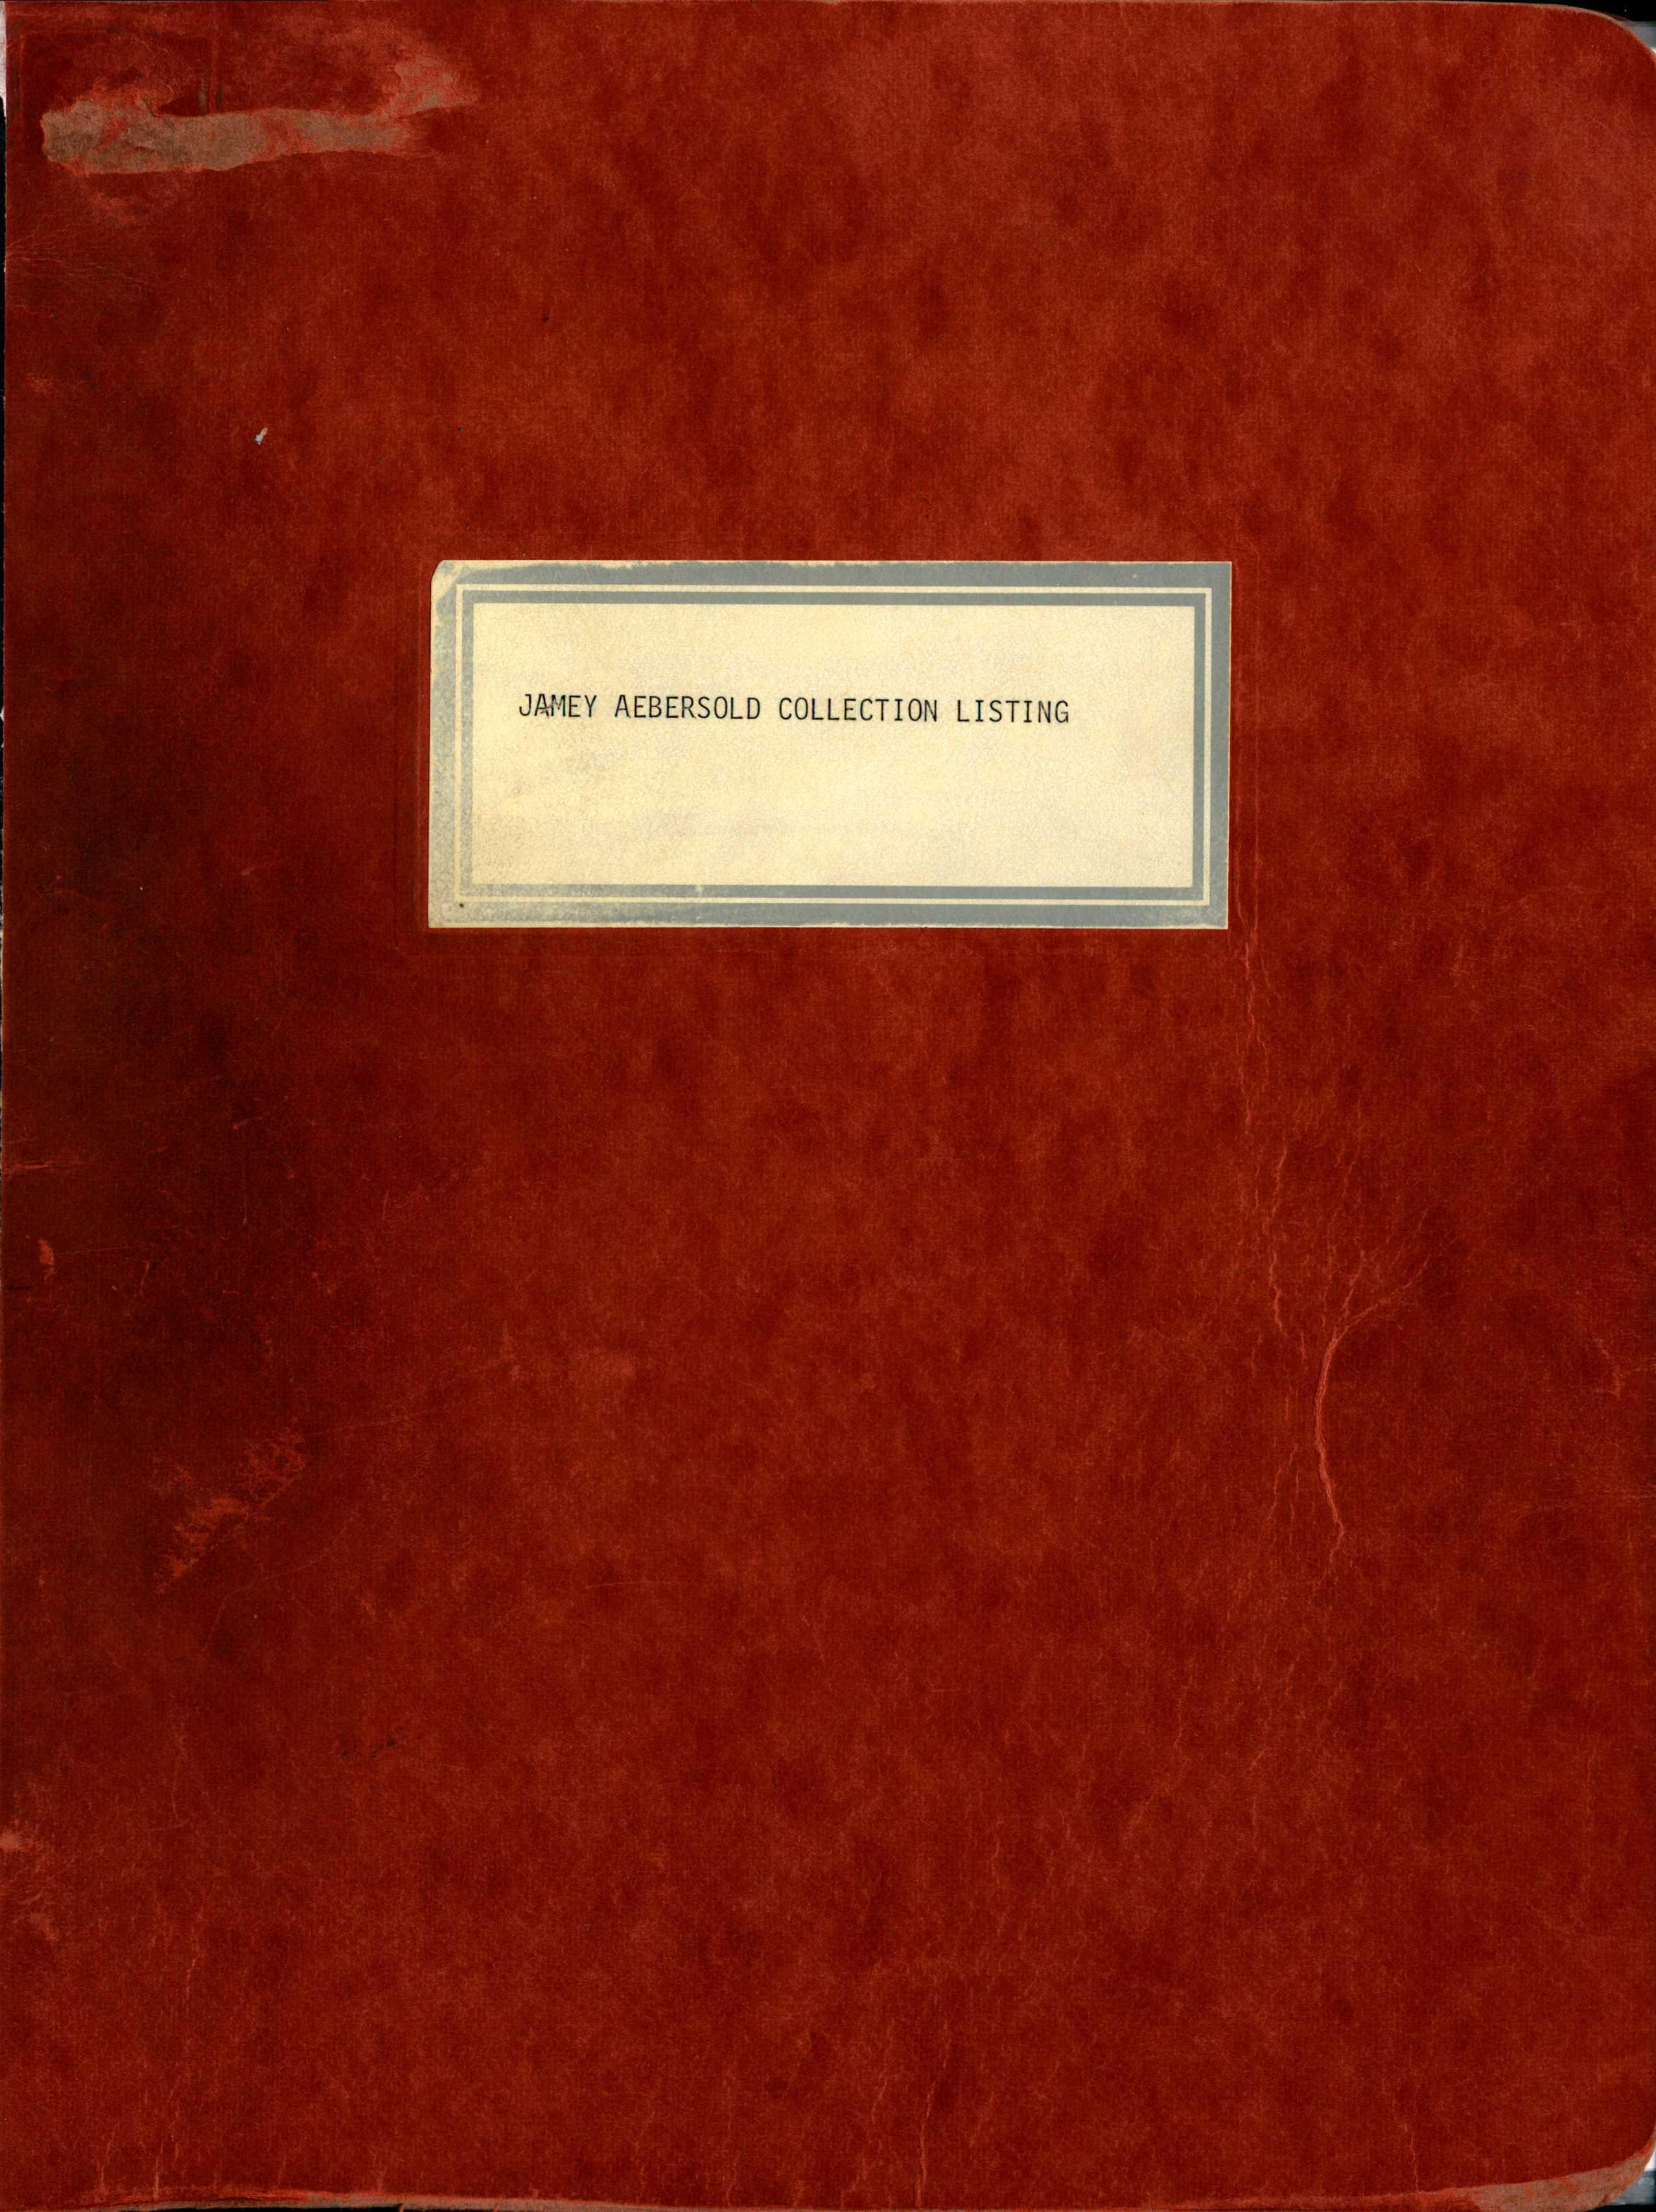 Cover of the Aebersold Jazz Collection